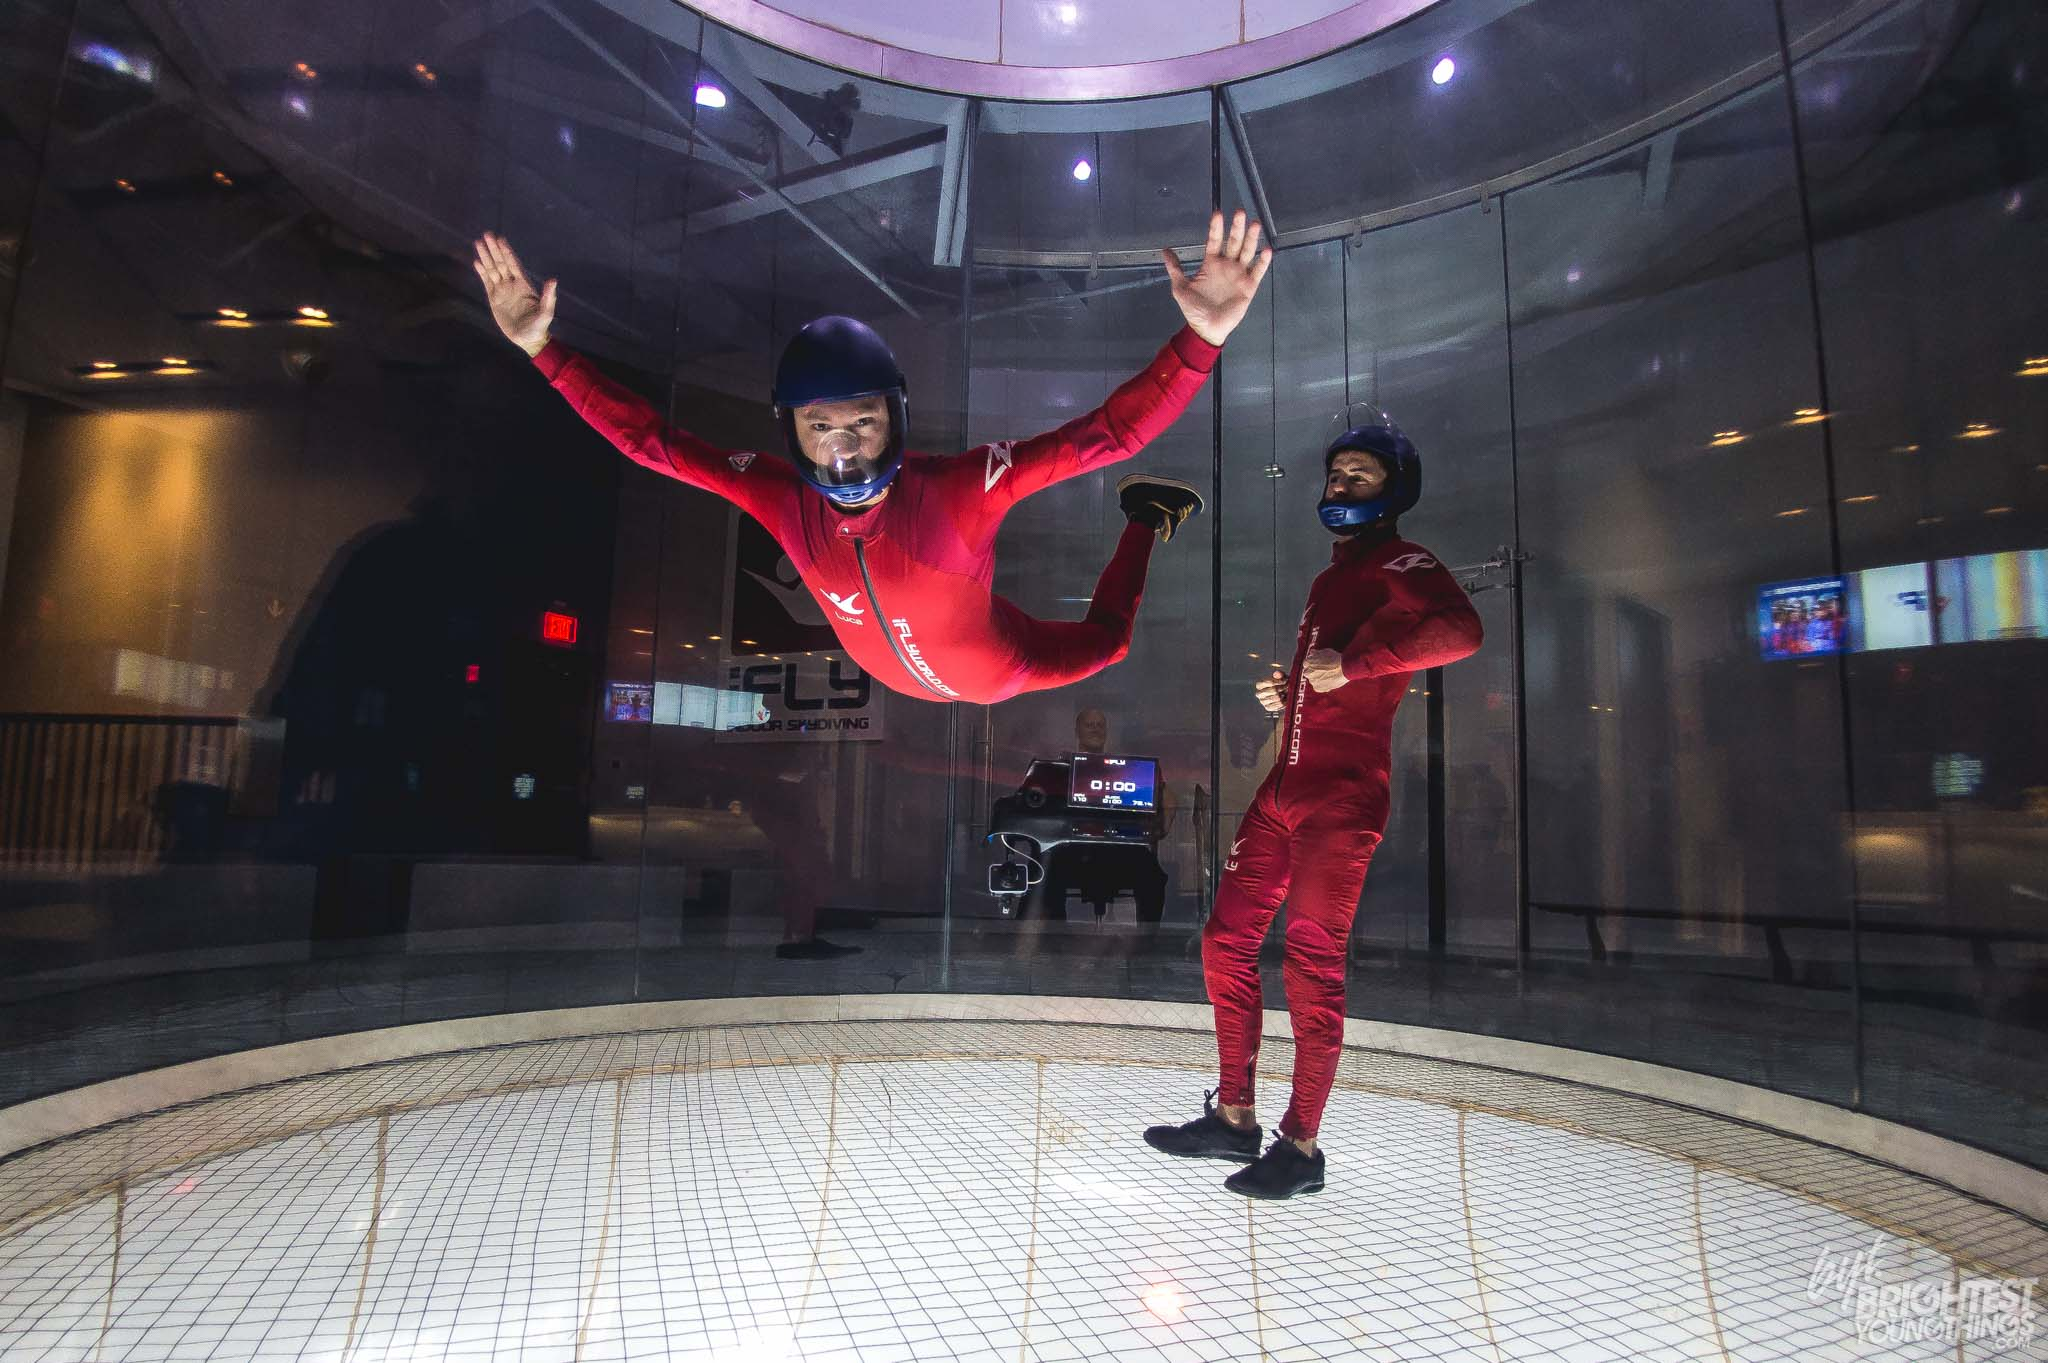 Ireland S First Indoor Skydive Centre Opens In Belfast